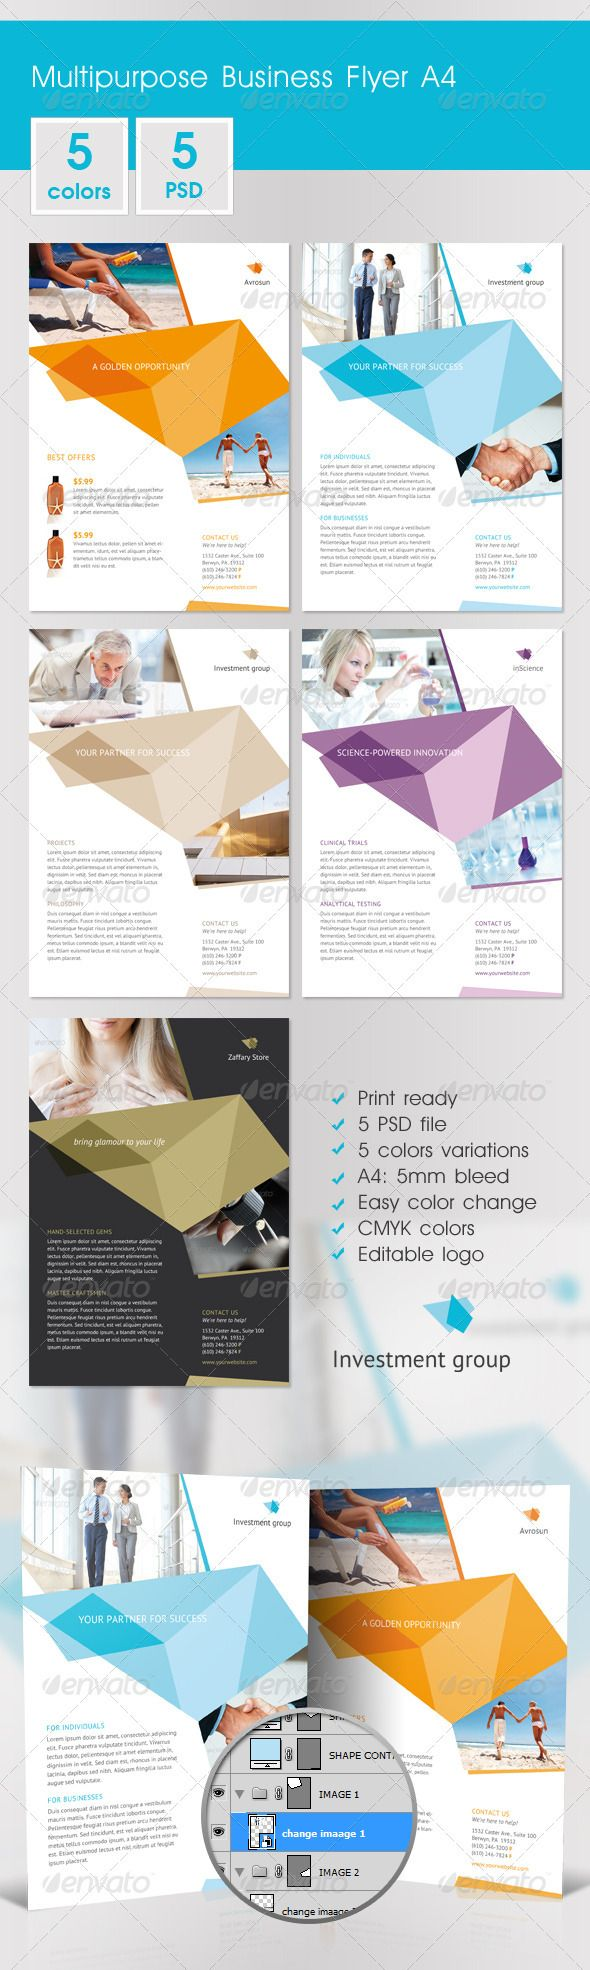 Multipurpose Business Flyer A4 - GraphicRiver Item for Sale